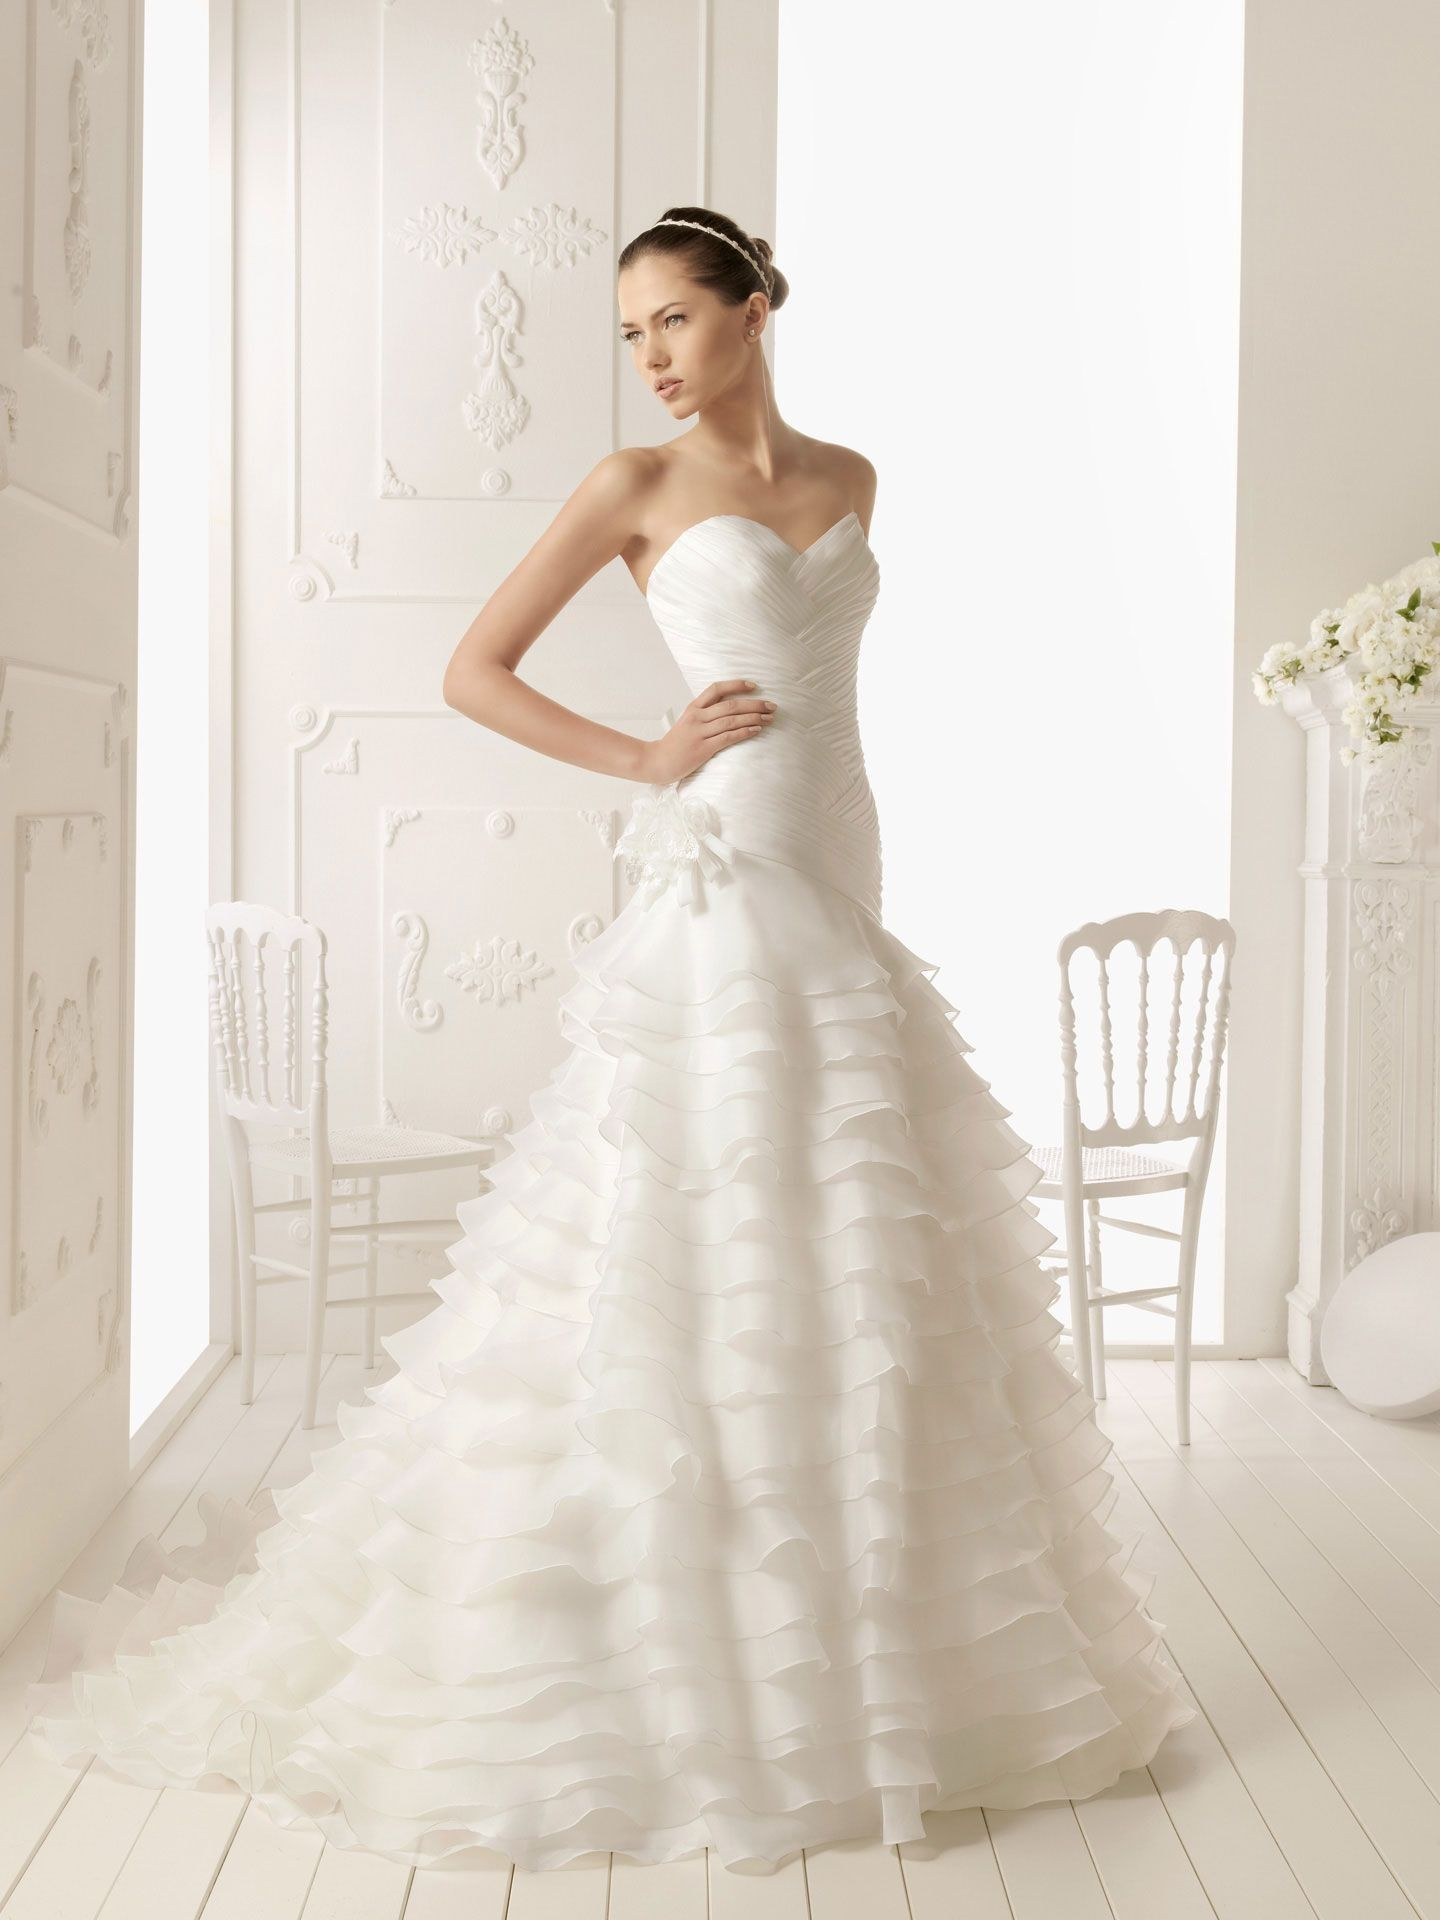 Wedding dresses with ruffles on skirt  organza  lush green  Pinterest  Uk online